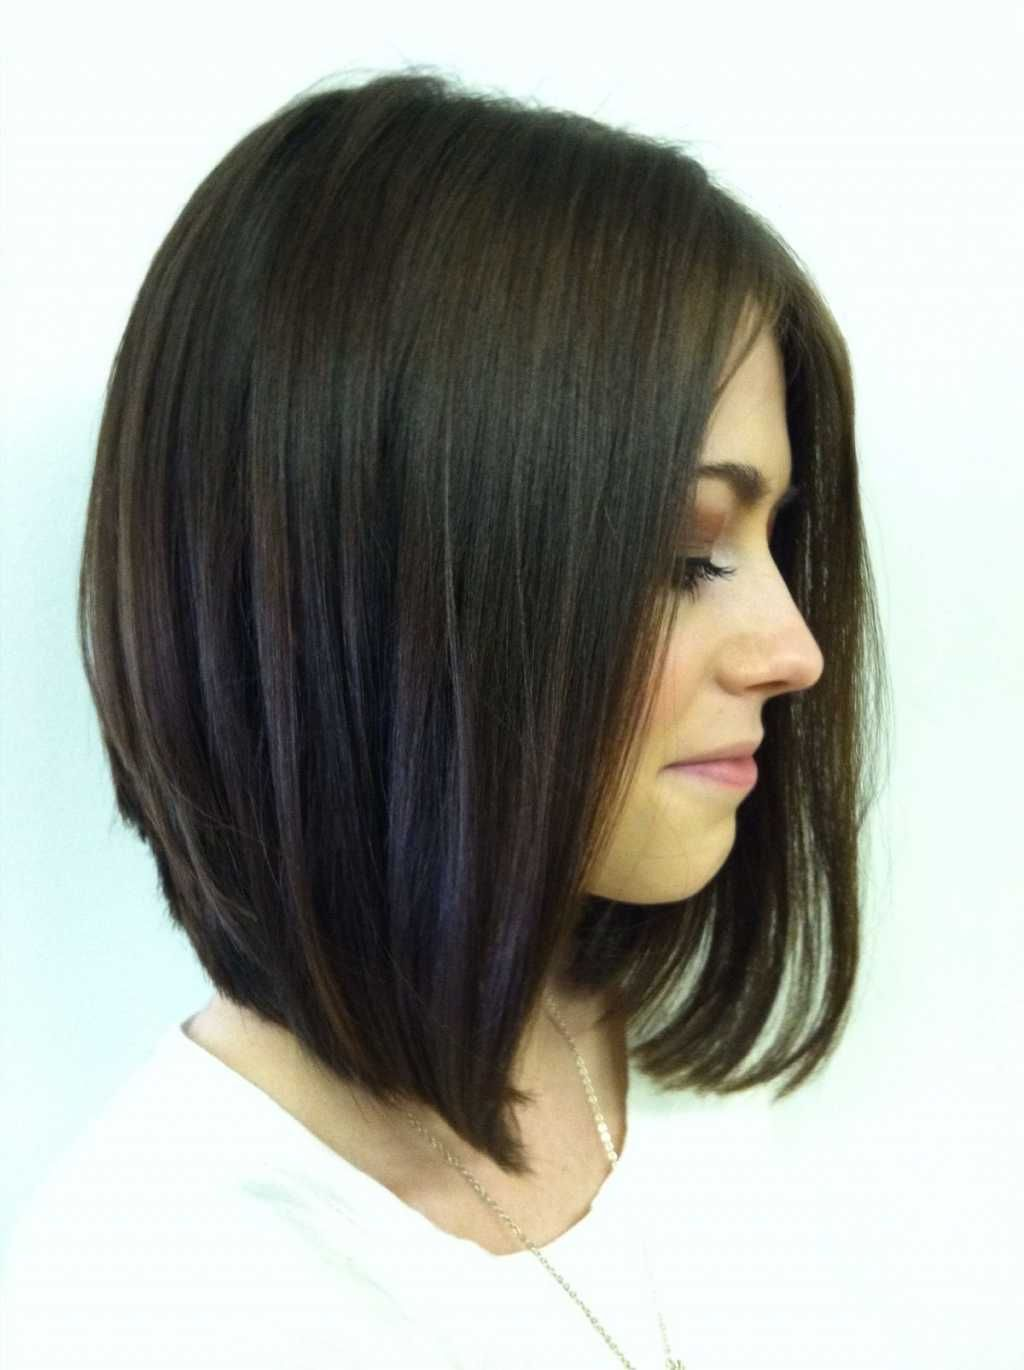 Fancy bob haircut for round face onelady hair hairs